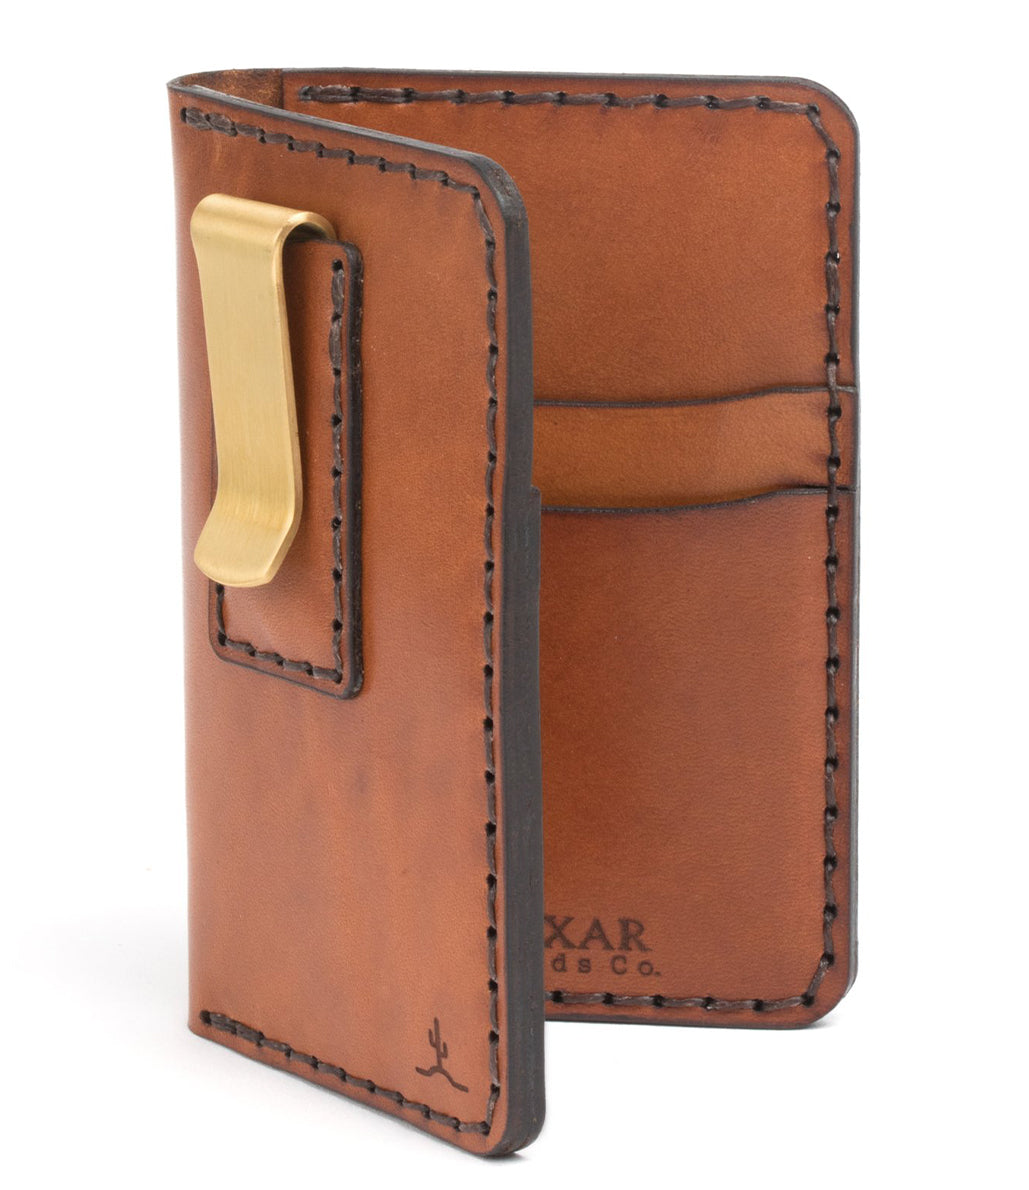 Vertical Card Wallet with Money Clip - 4 week delay